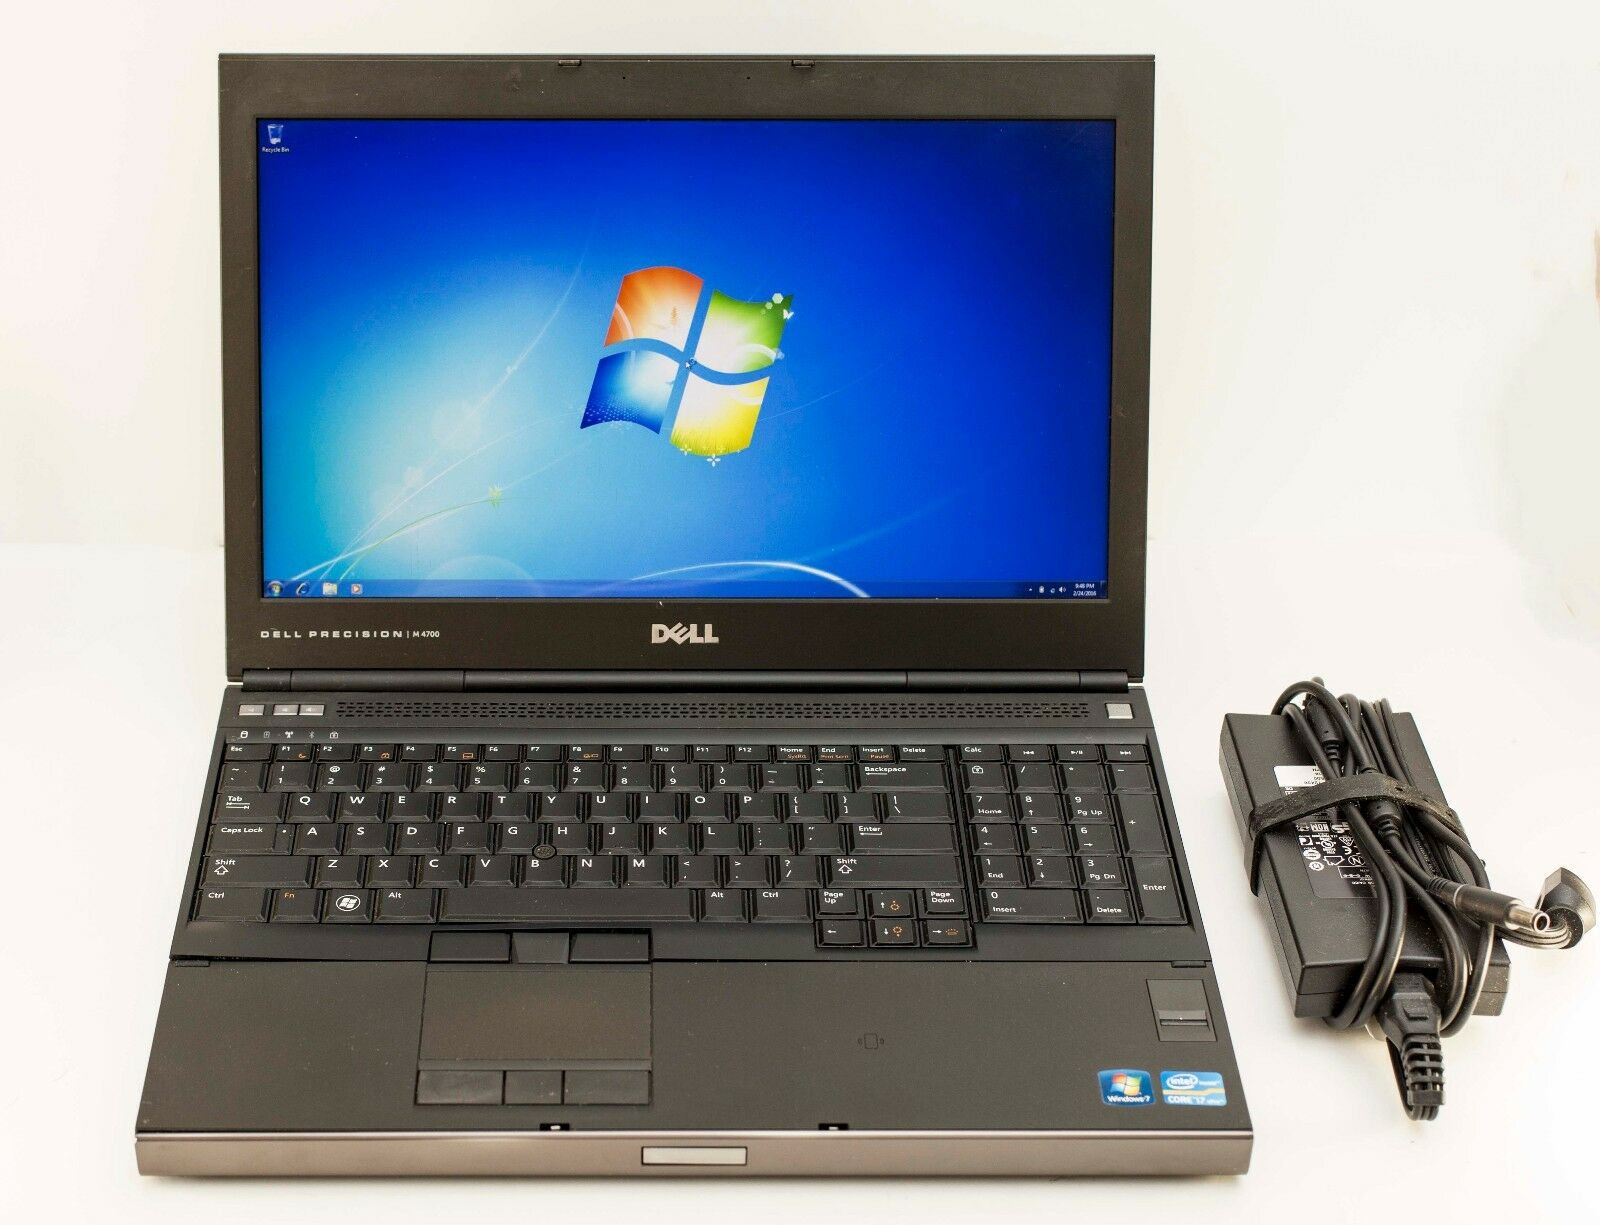 Dell Precision M4700 Core i7-3740QM 2.7GHz 32GB 1TB Win 7 NVidia Gaming Laptop